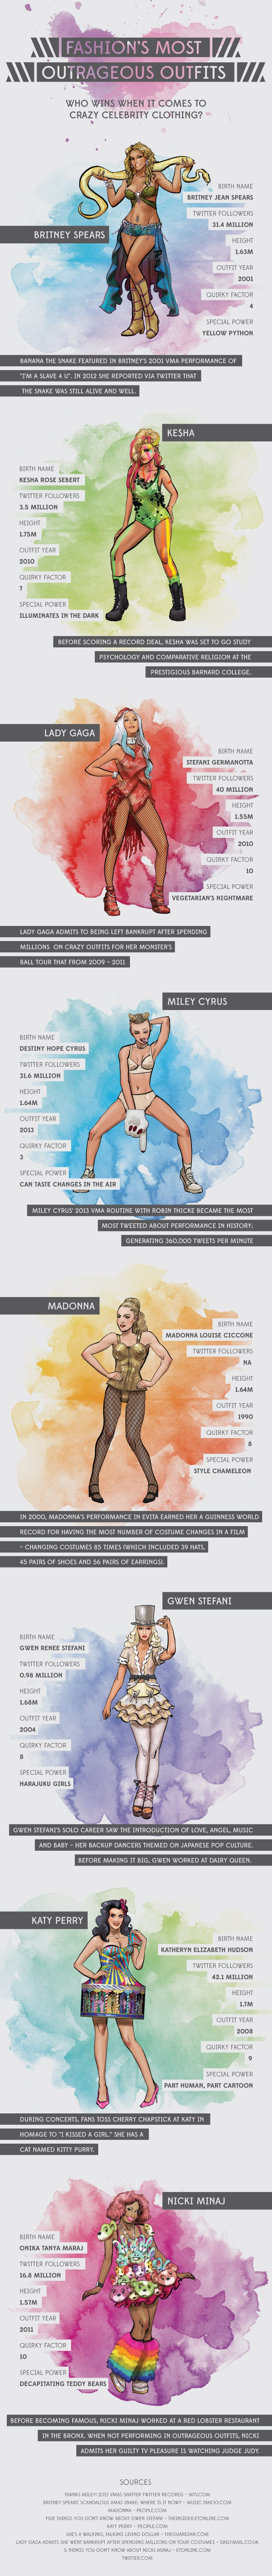 fashions most outrageous outfits infographic